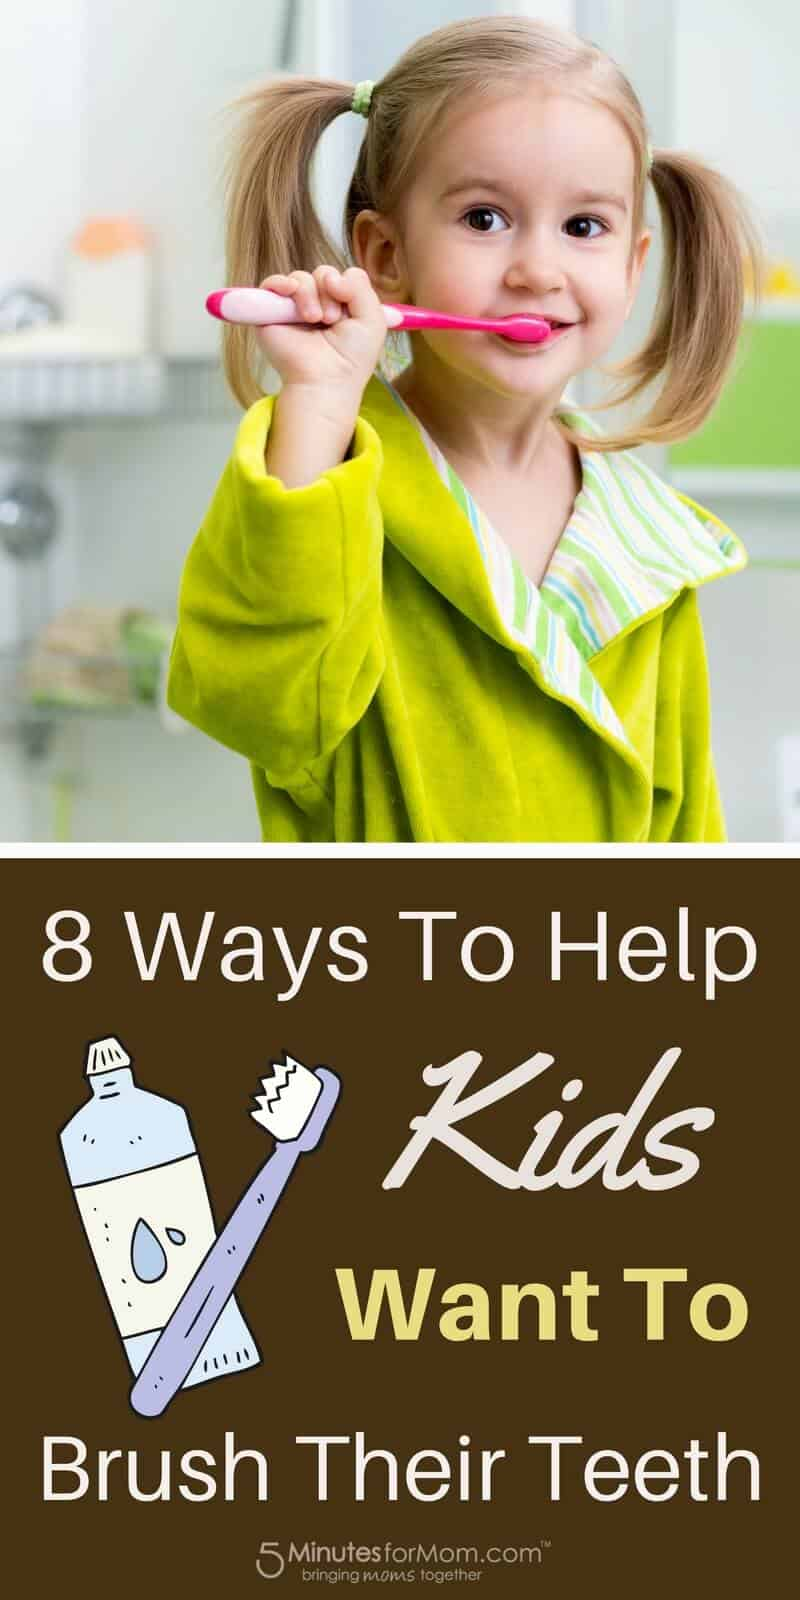 8 Ways to Help Kids Want to Brush Their Teeth - Toothbrushing Tips